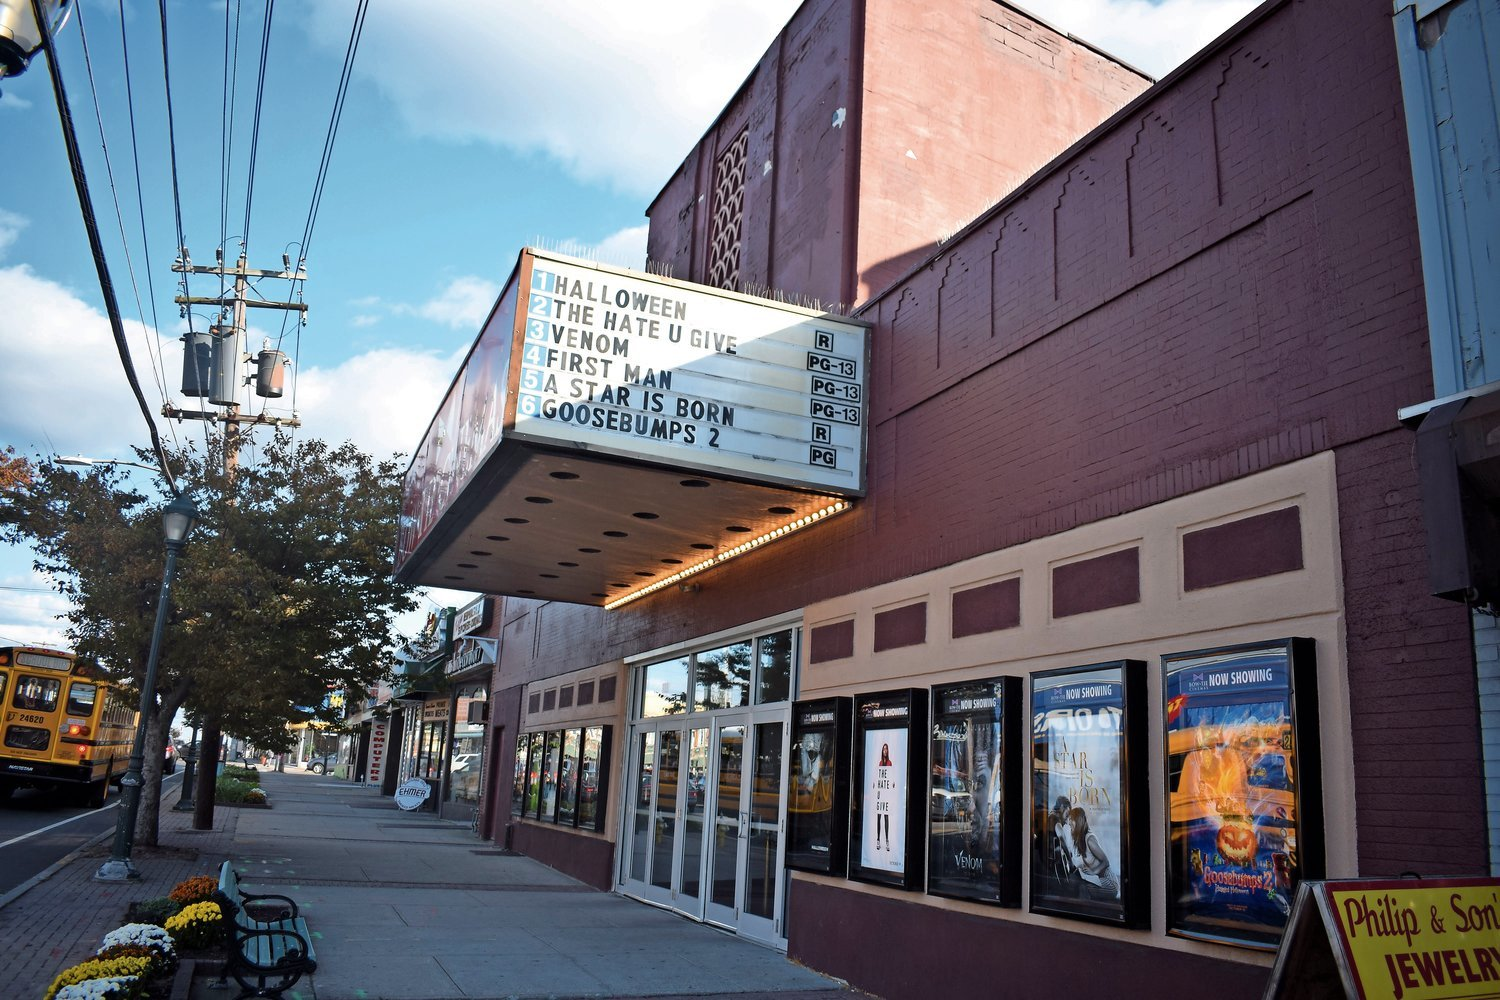 This Franklin Square movie theater, which is among the few Art Deco structures left in the Town of Hempstead, was recently granted historic landmark status by the Town of Hempstead.